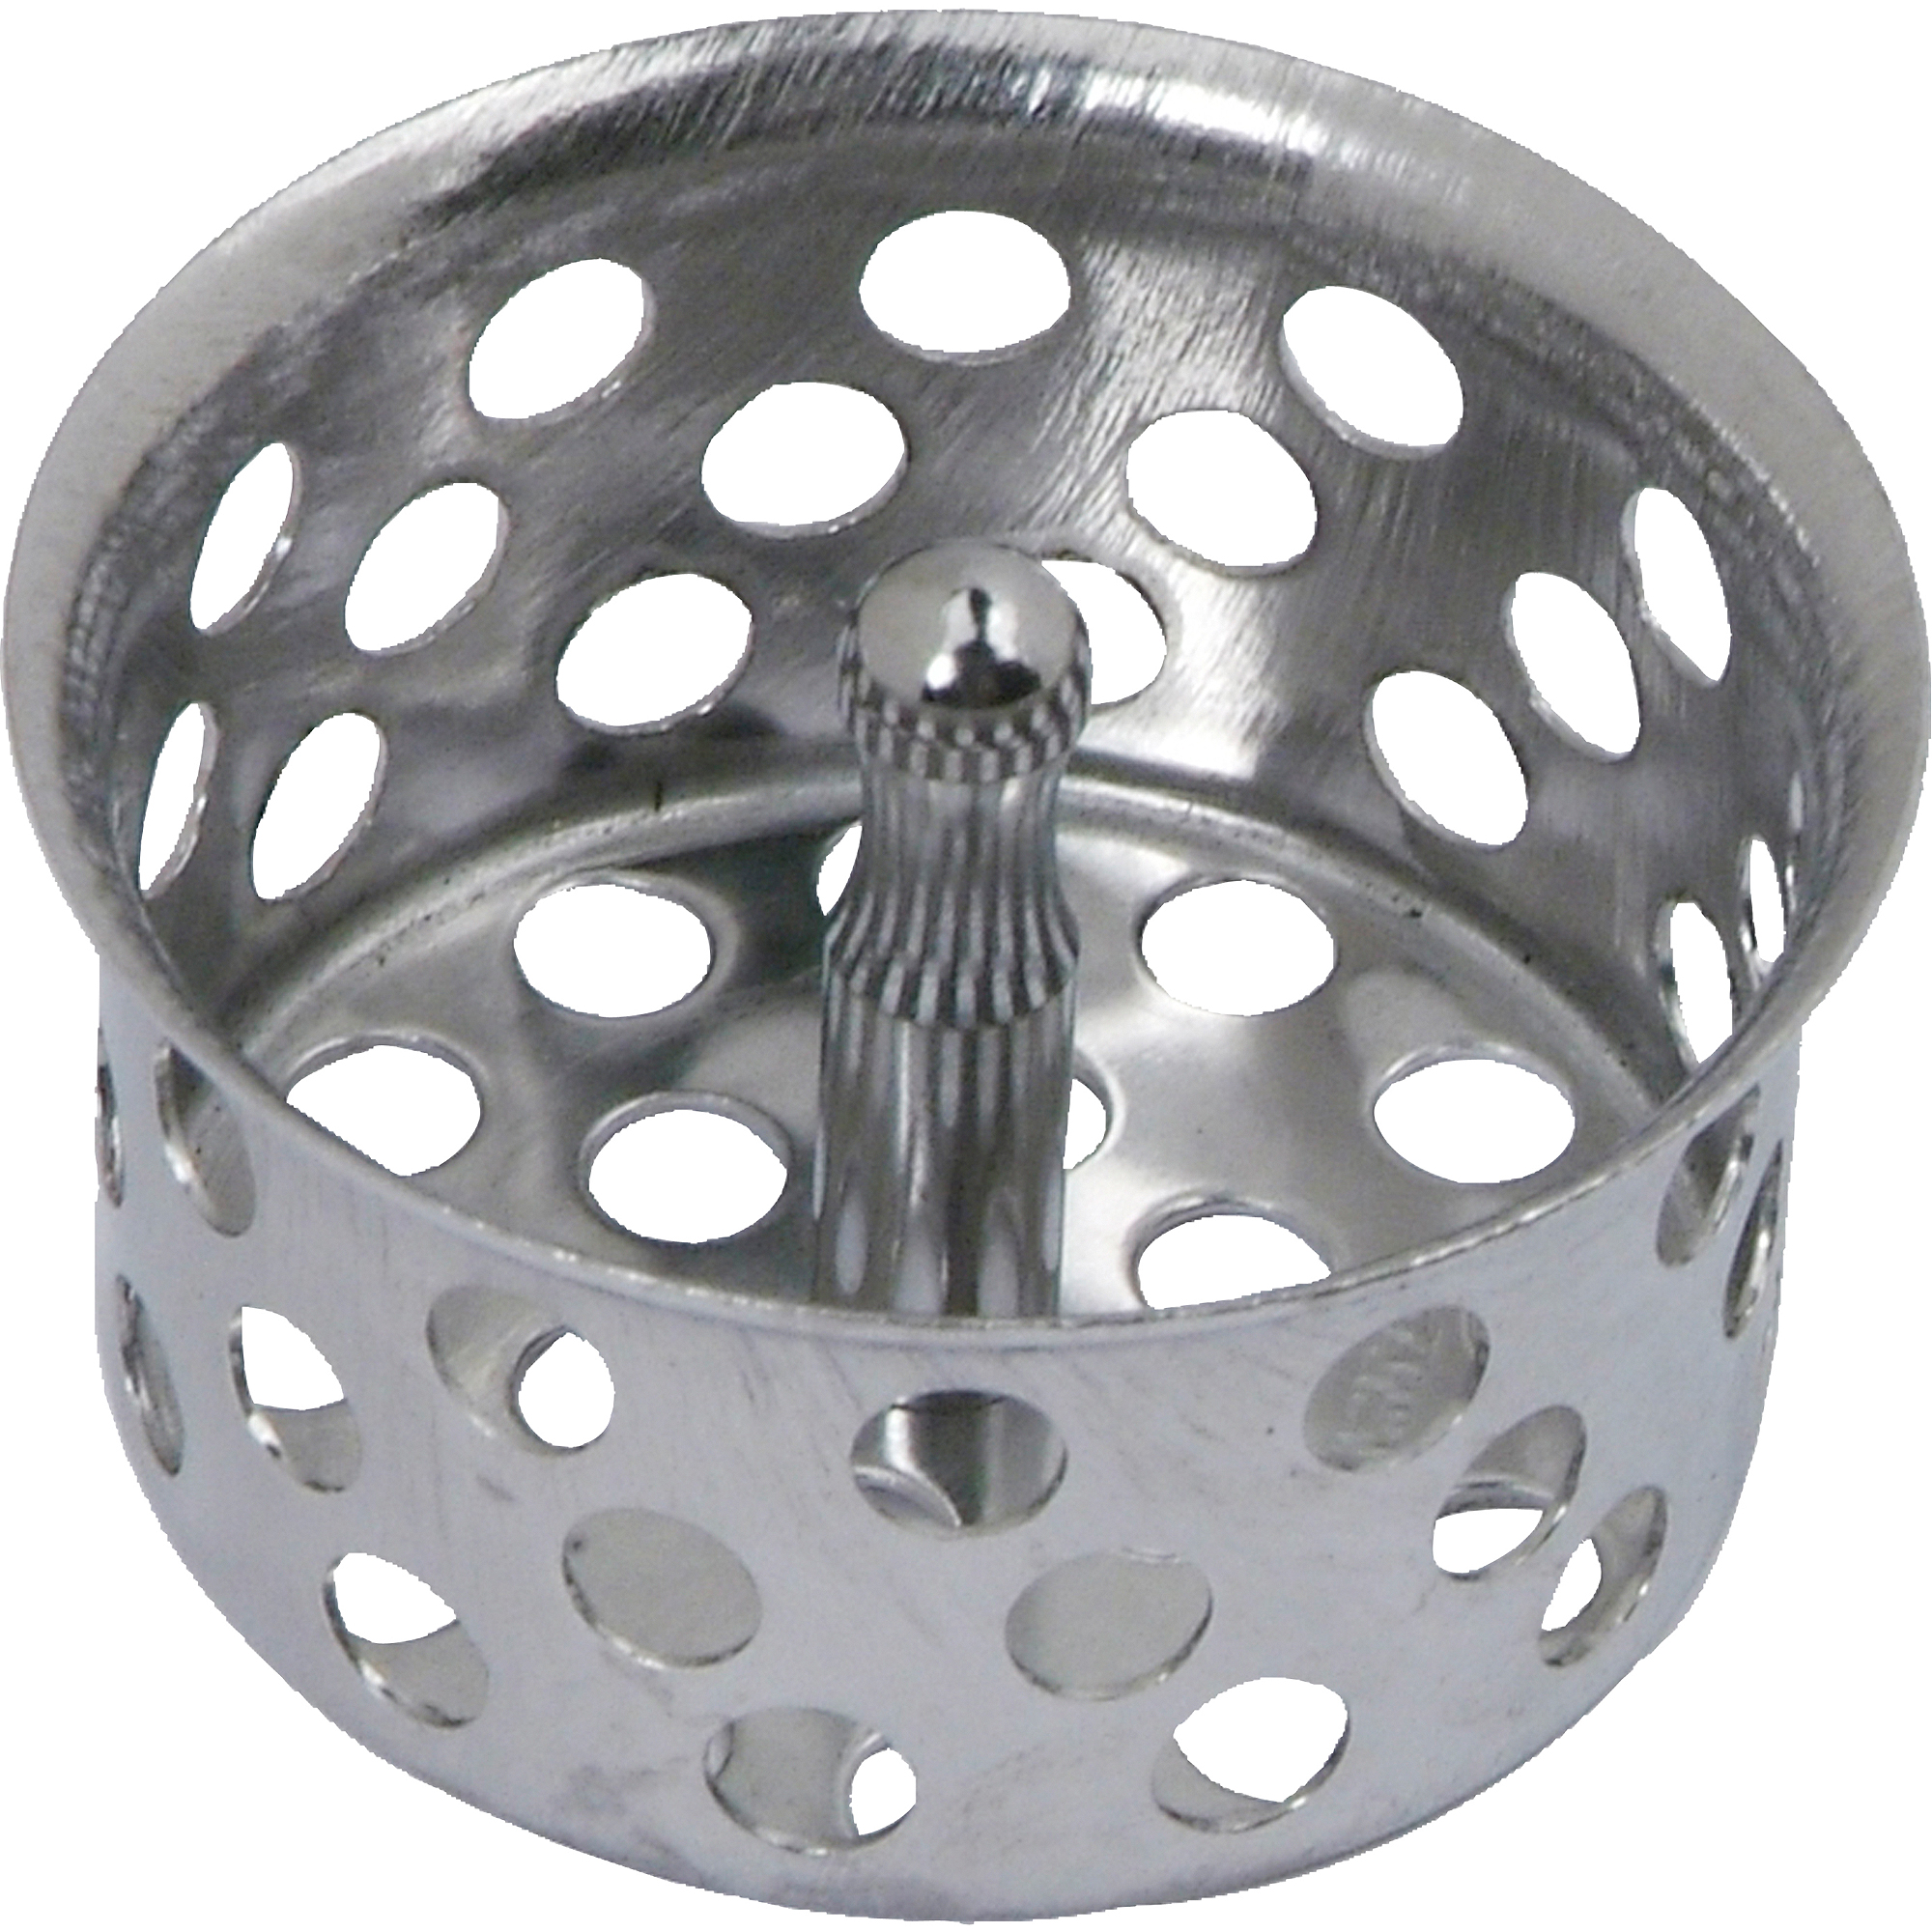 Peerless Chrome Sink Strainer Cup with Post